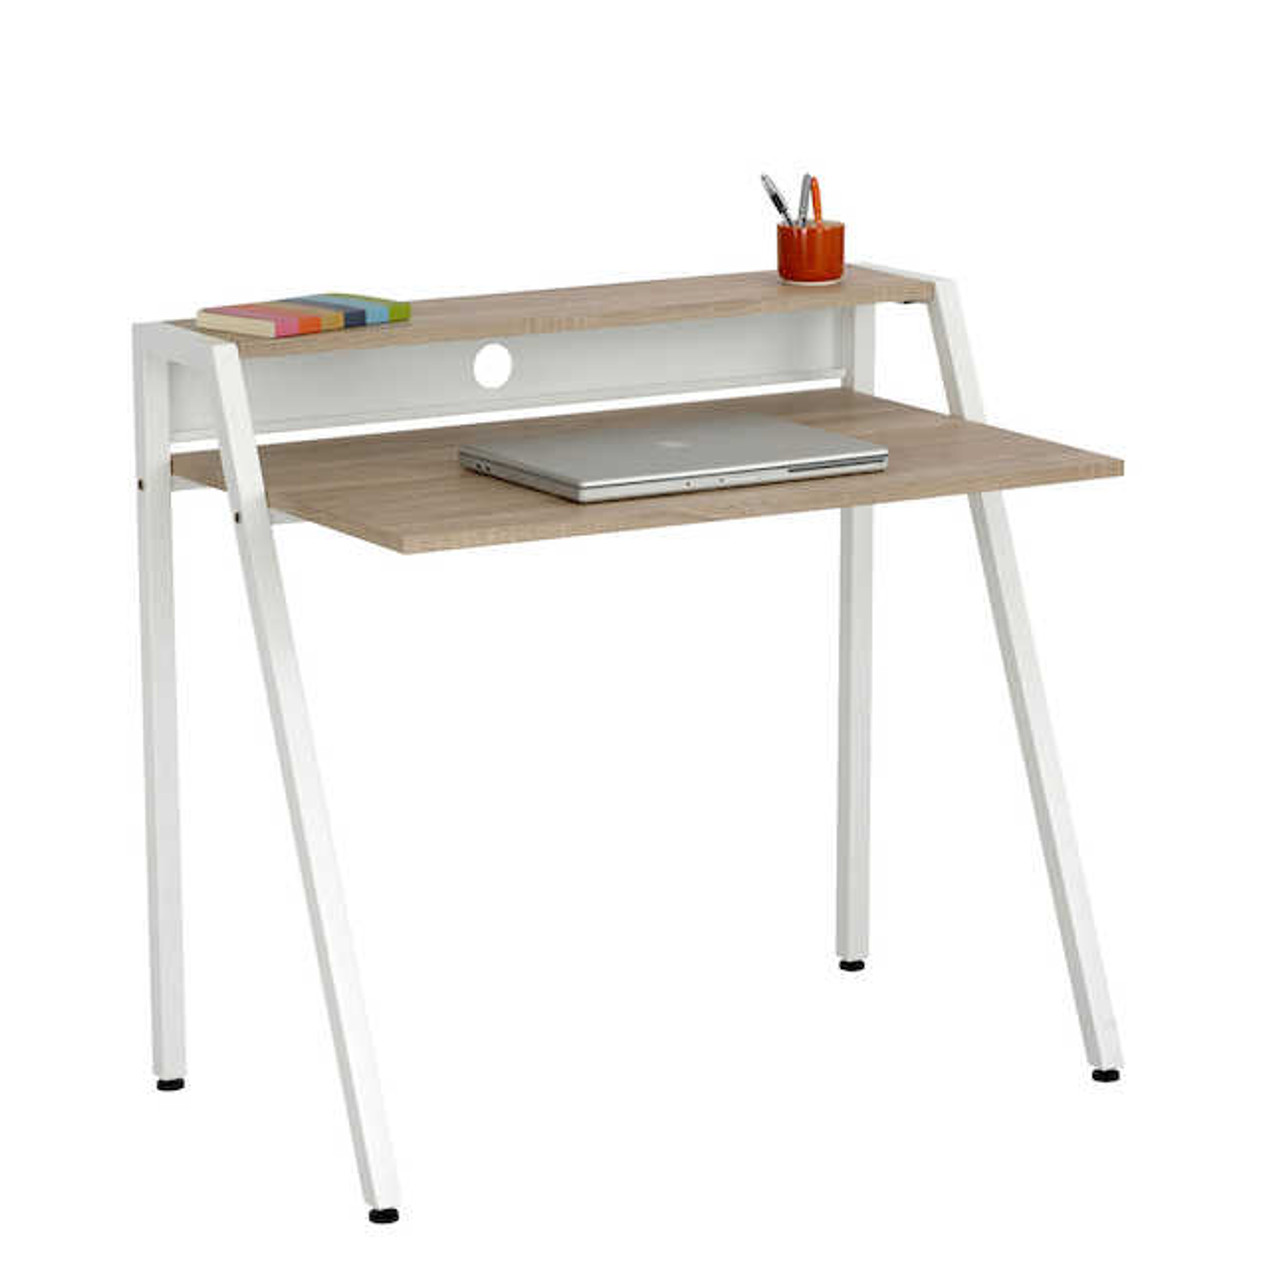 Image of: Safco Small Modern Table Desk 1951